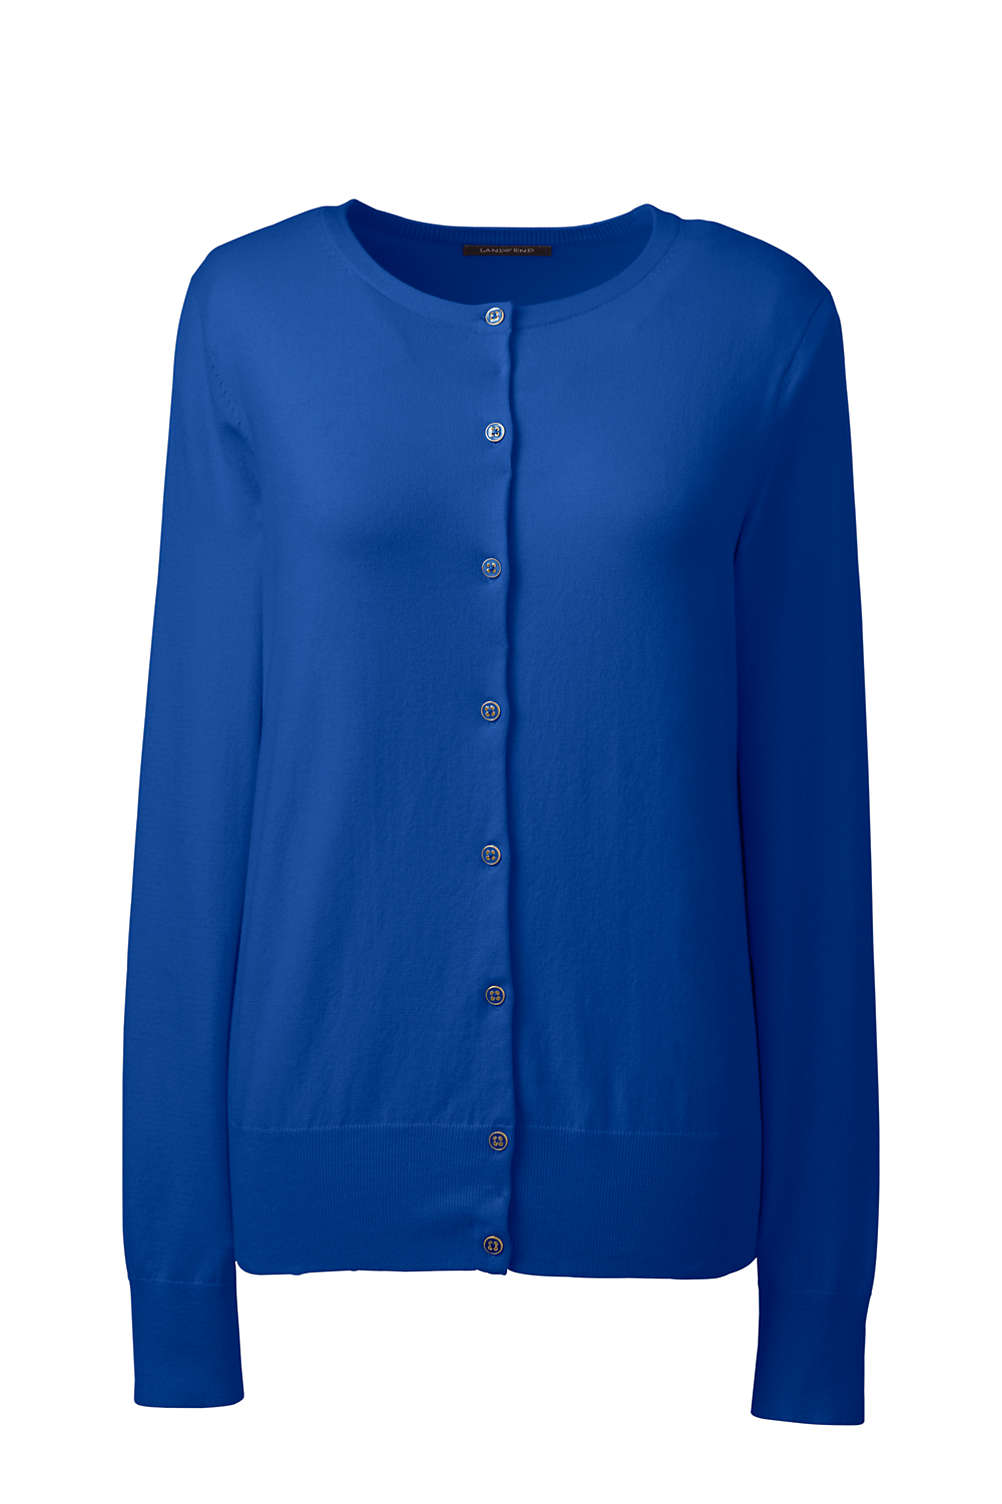 f344e3b6fab Women's Supima Cotton Cardigan Sweater from Lands' End